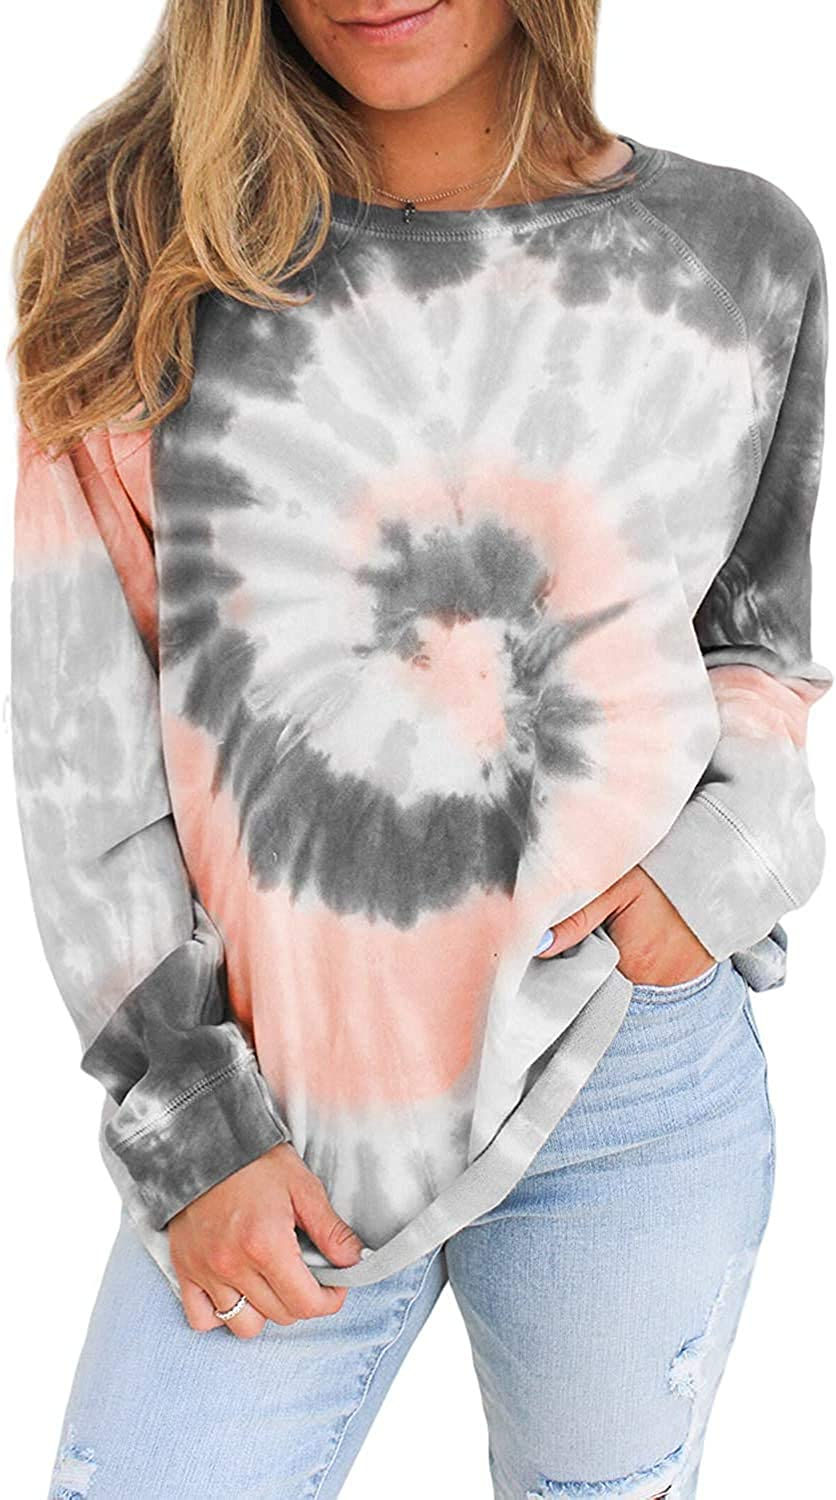 QPQ Women's Casual Tie Dye Crewneck Long Sleeve Loose Pullover Sweatshirt Tops